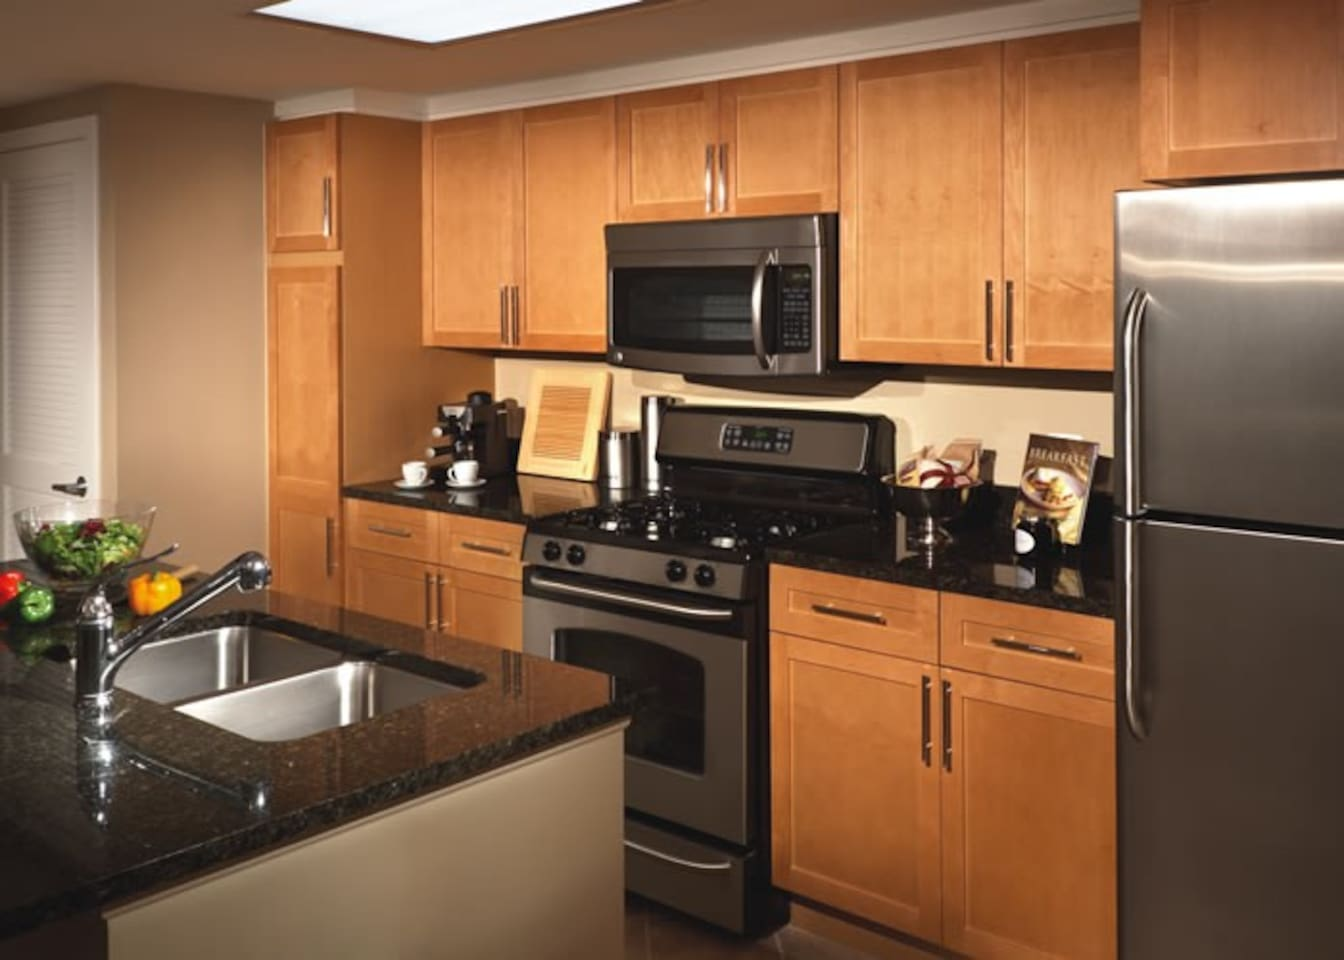 Gourmet Kitchen with Top of the Line Finishes!